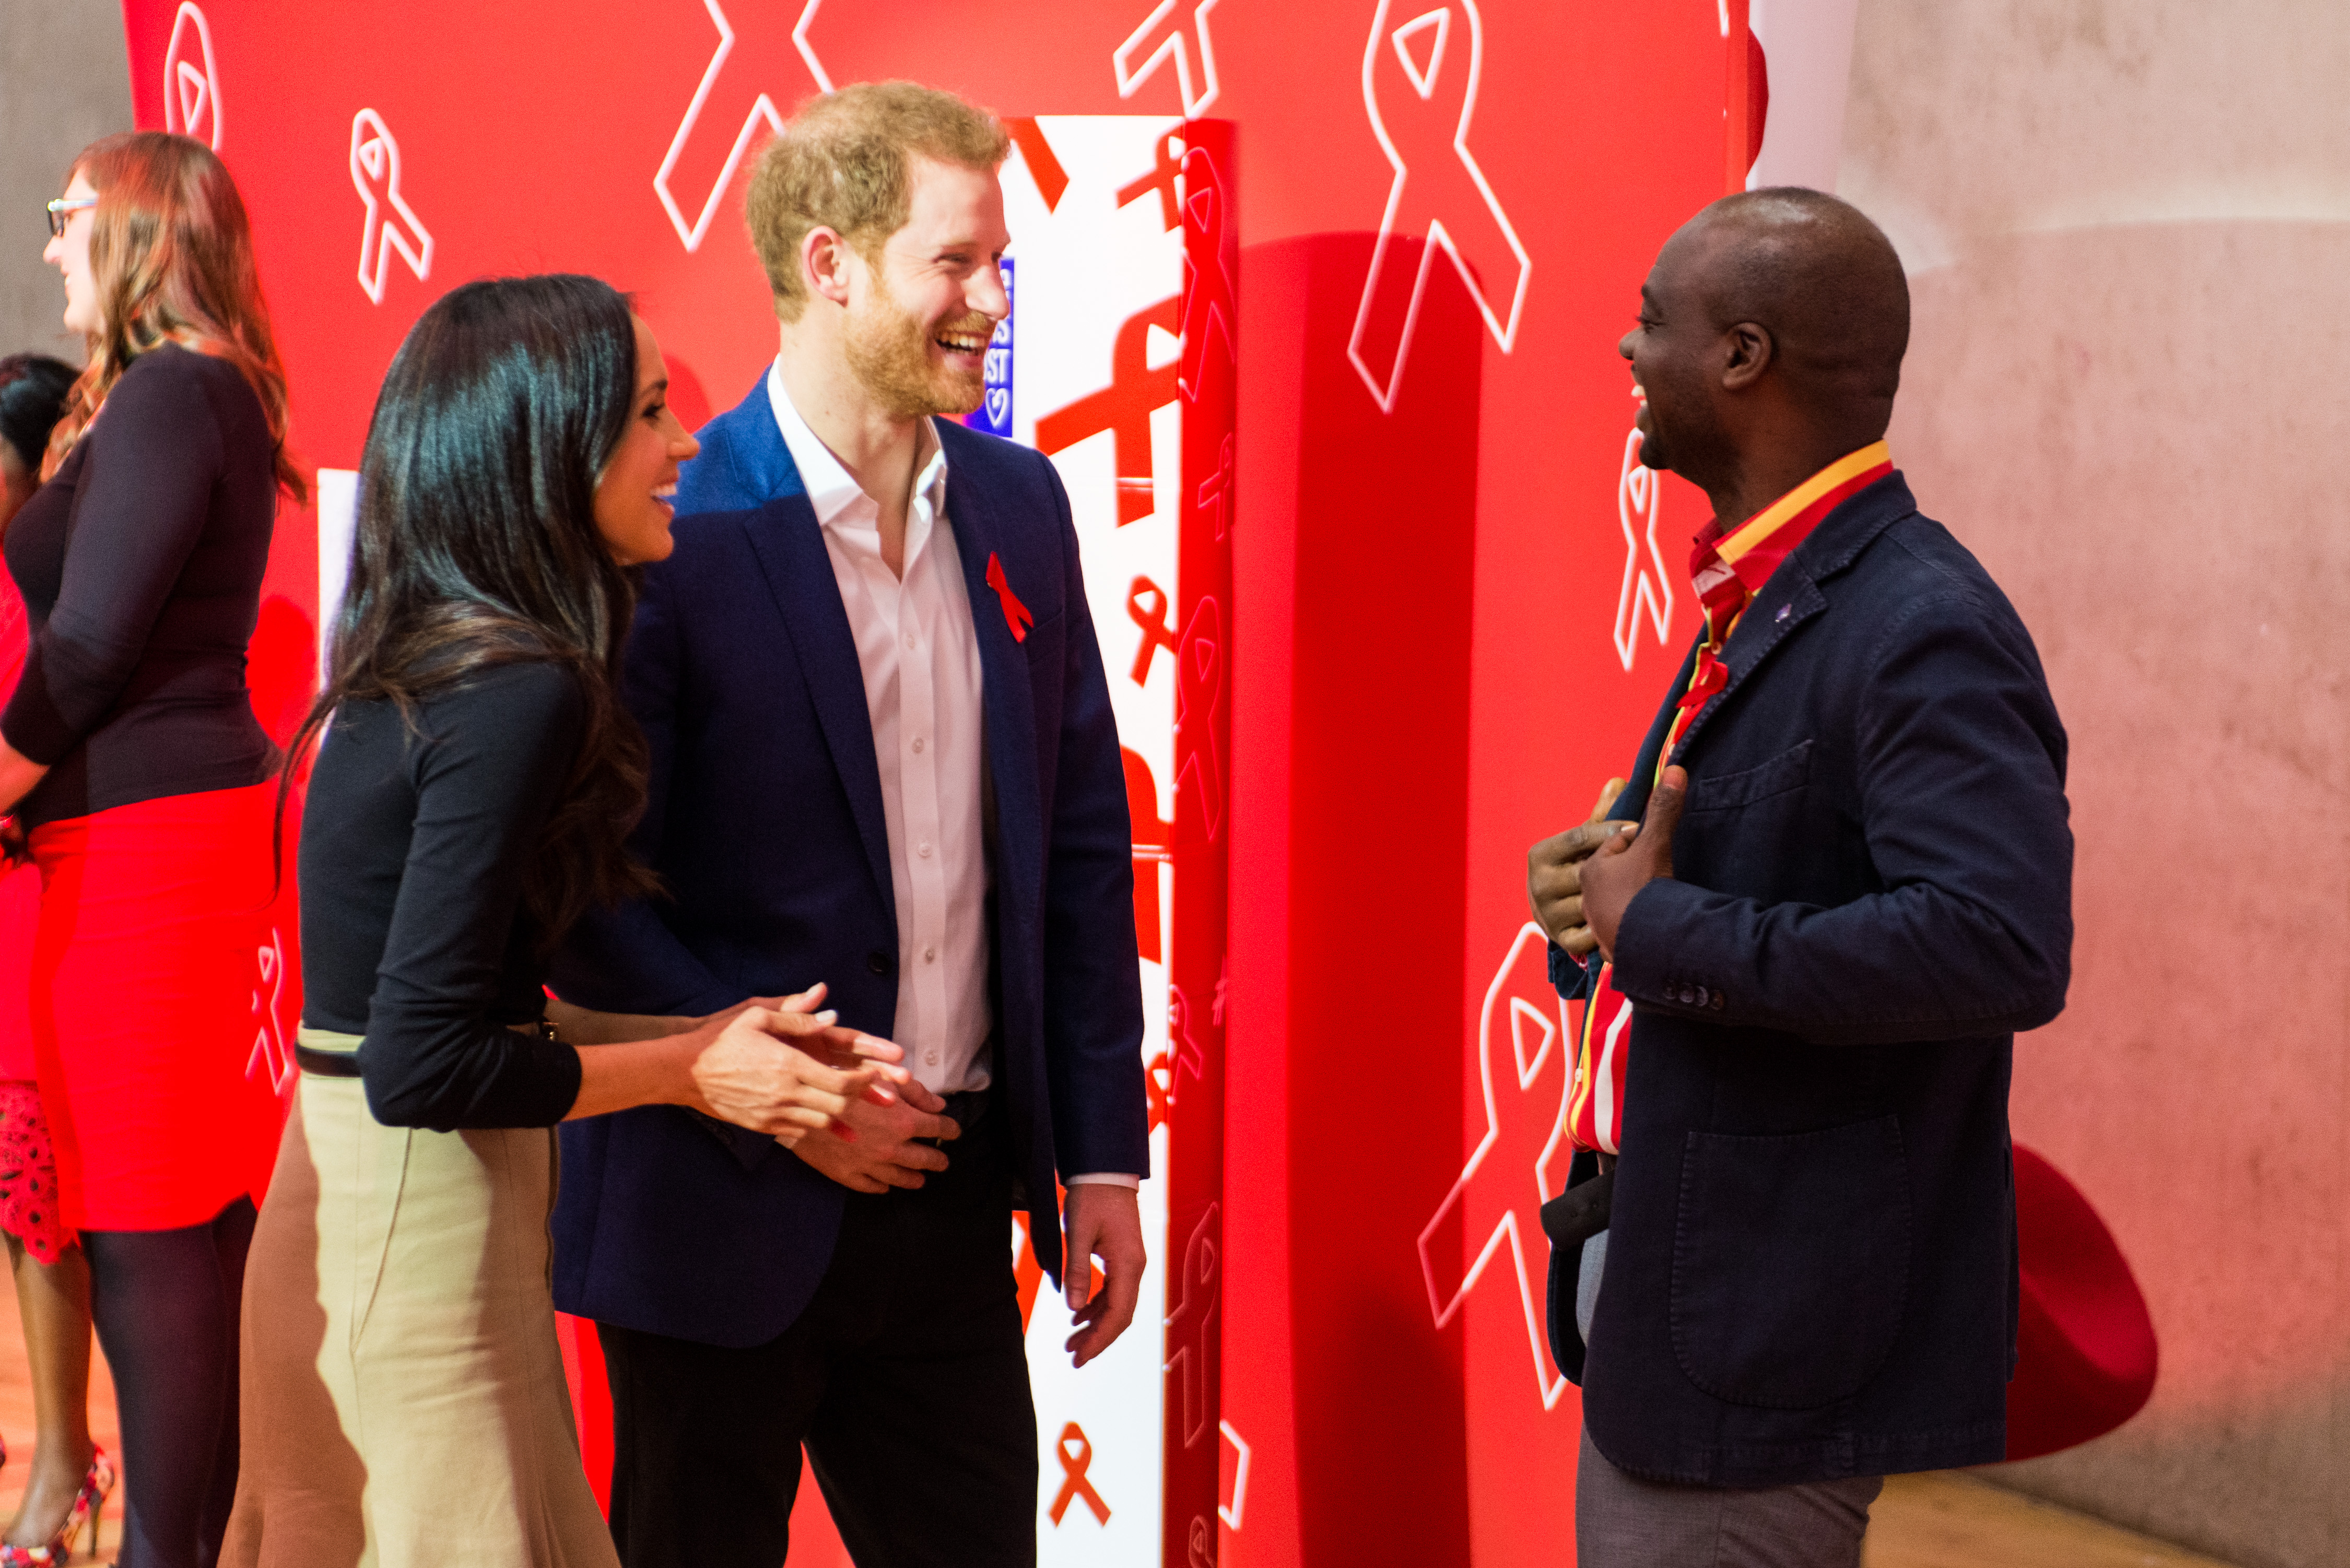 Ms Markle and Prince Harry talking about HIV